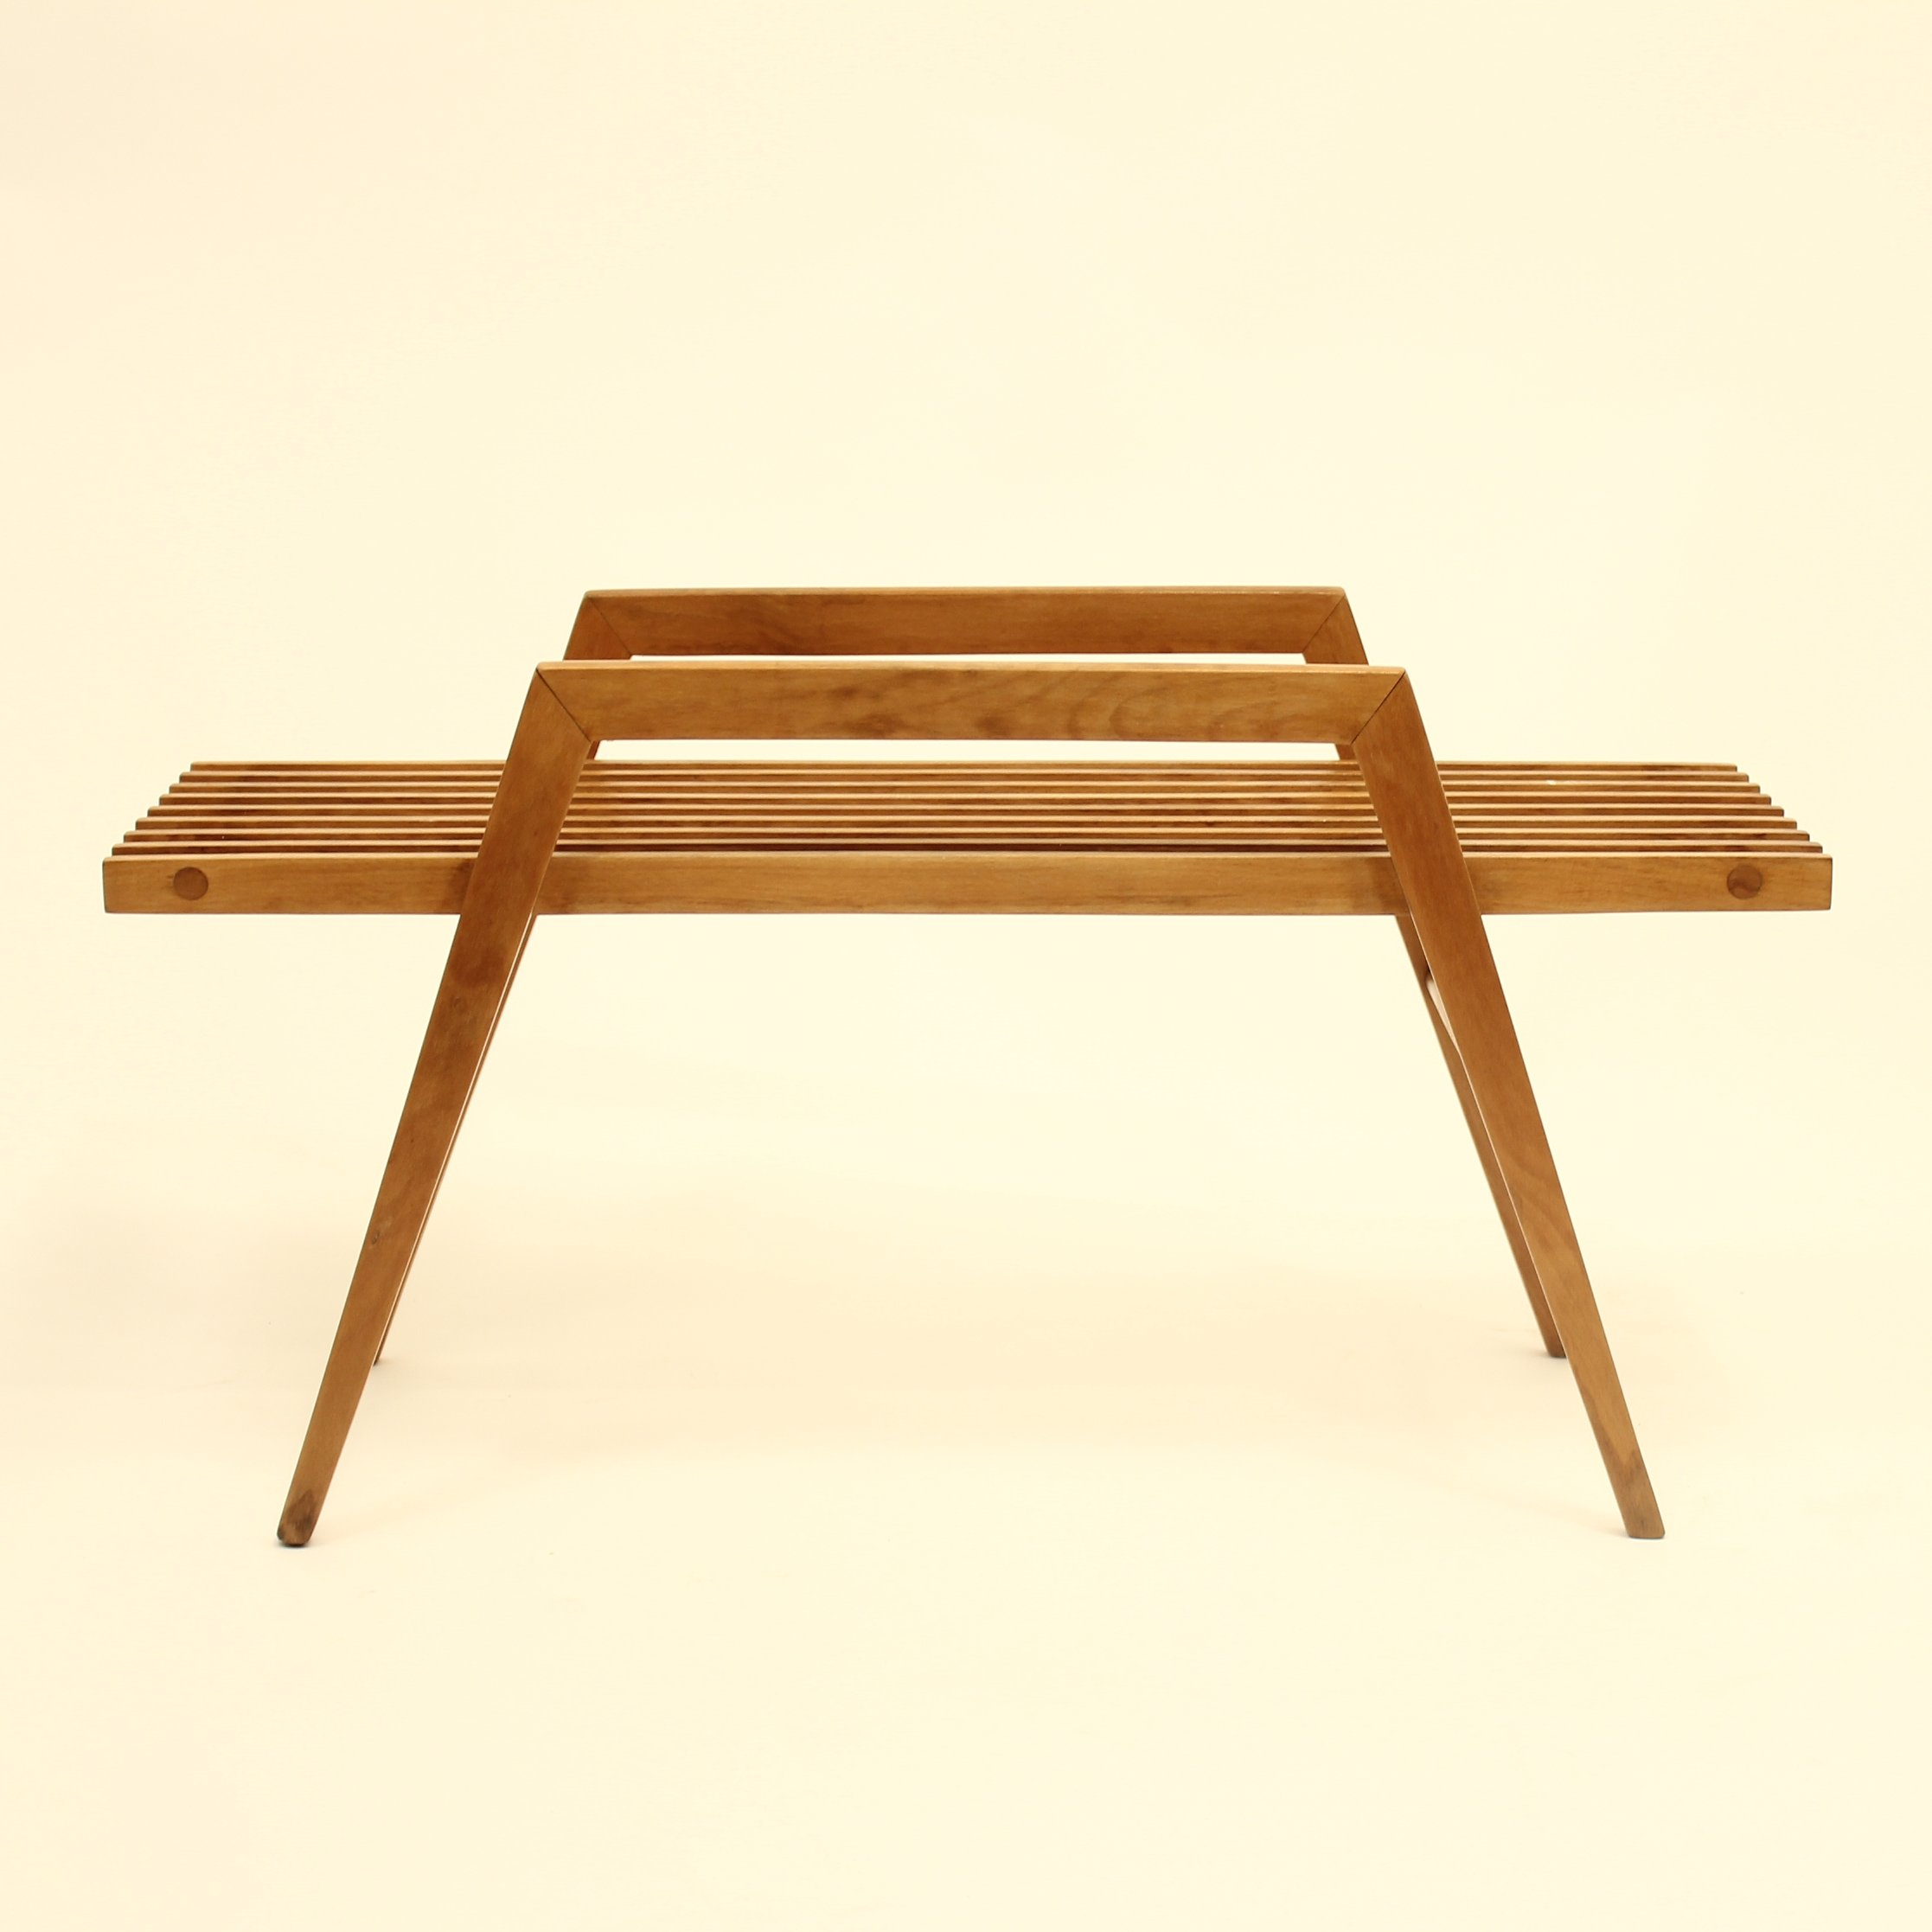 Miraculous Wooden Plant Stand 1960S Gmtry Best Dining Table And Chair Ideas Images Gmtryco